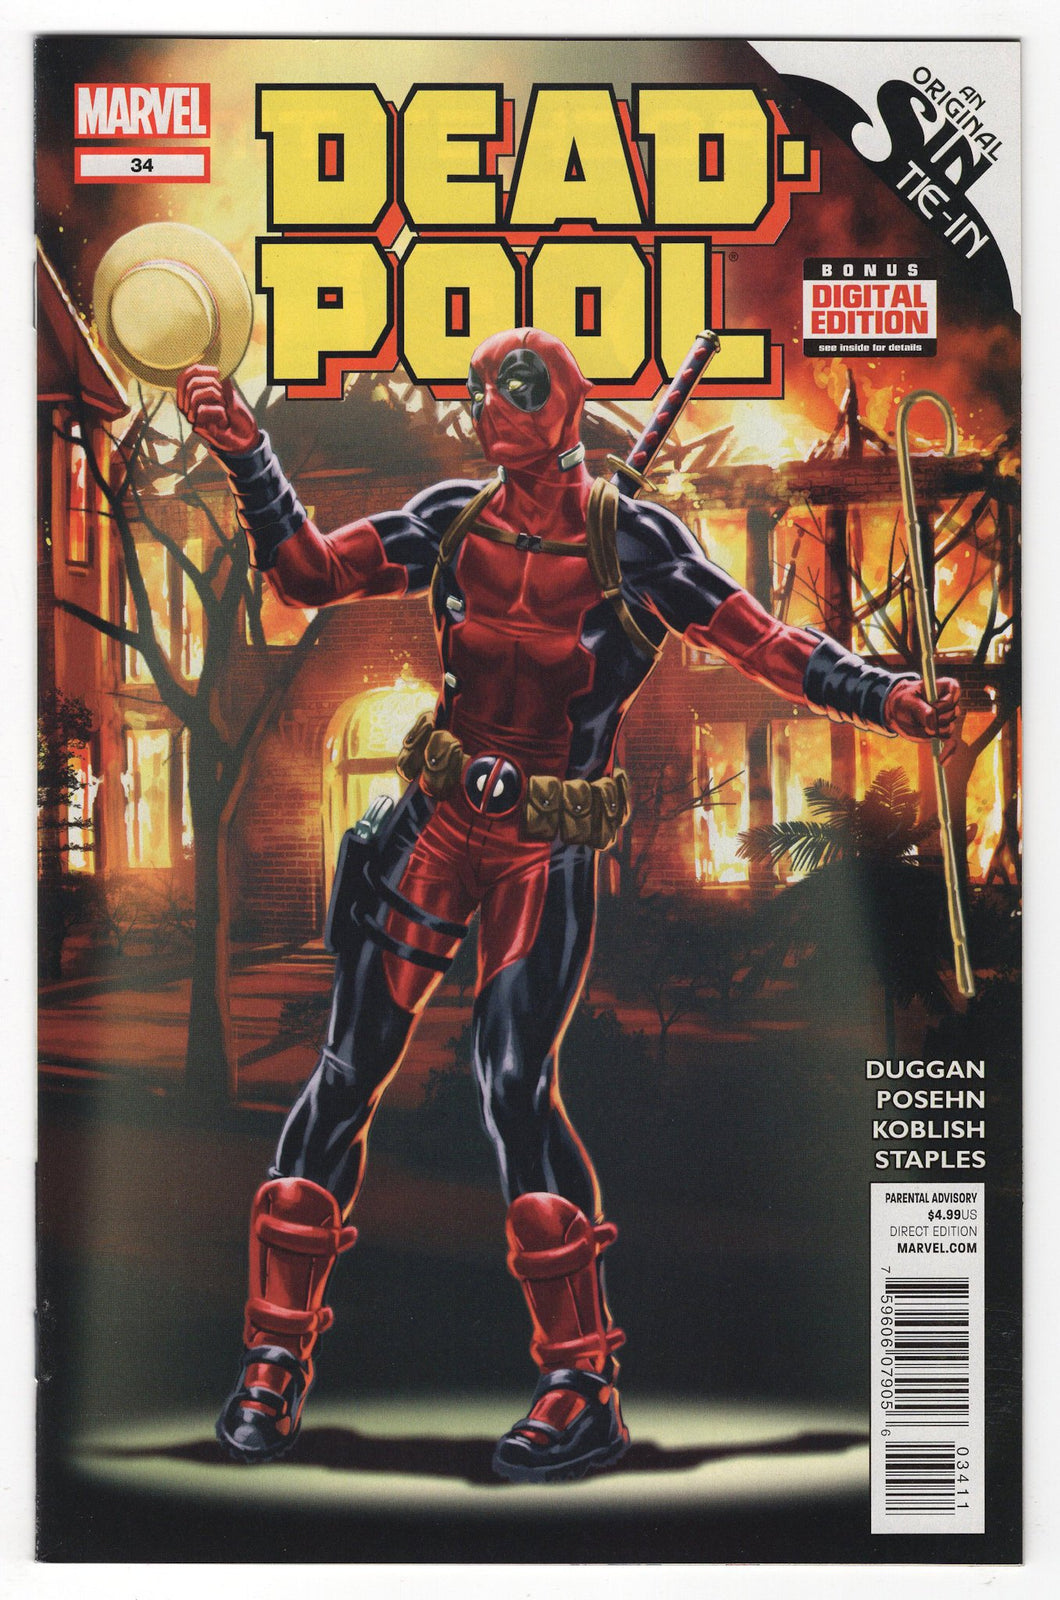 Deadpool #34 Front Cover